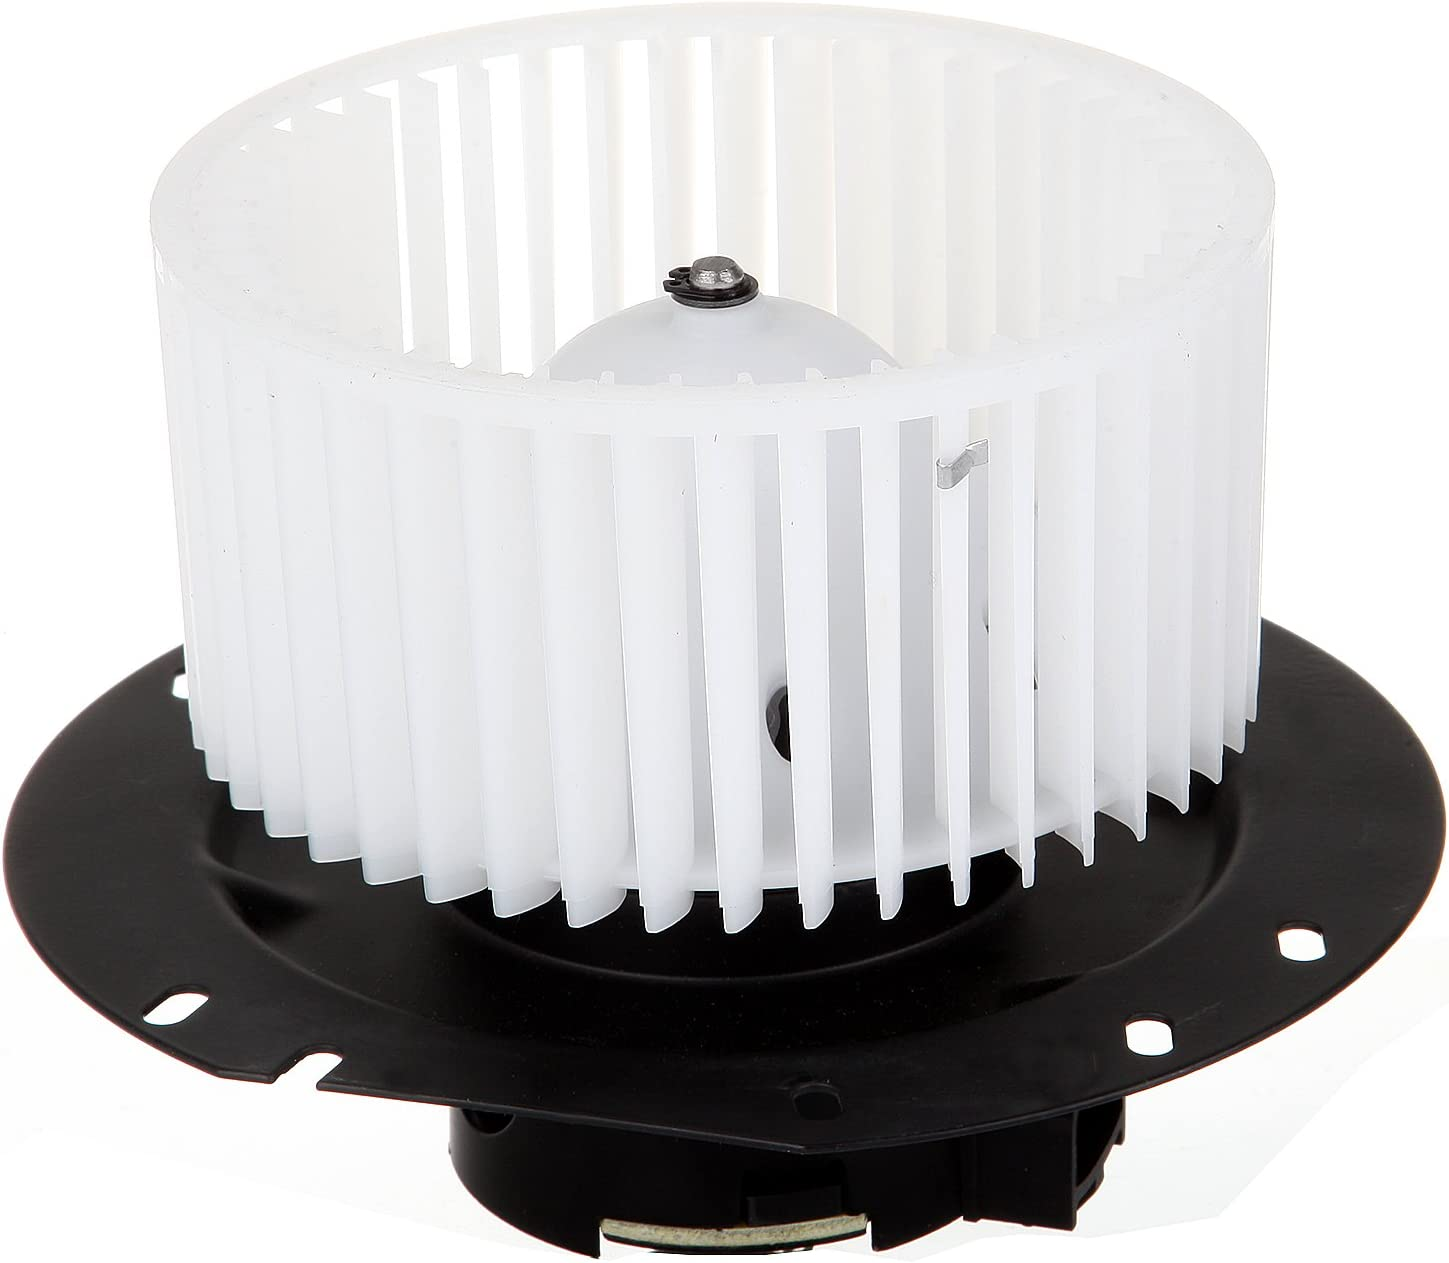 HVAC Plastic Heater Blower Motor w//Fan ABS Cage ECCPP fit for 1998-2011 Ford Ranger //2001-2005 Ford Explorer Sport Trac //1995-2001 Ford Explorer //1997-2001 Mercury Mountaineer